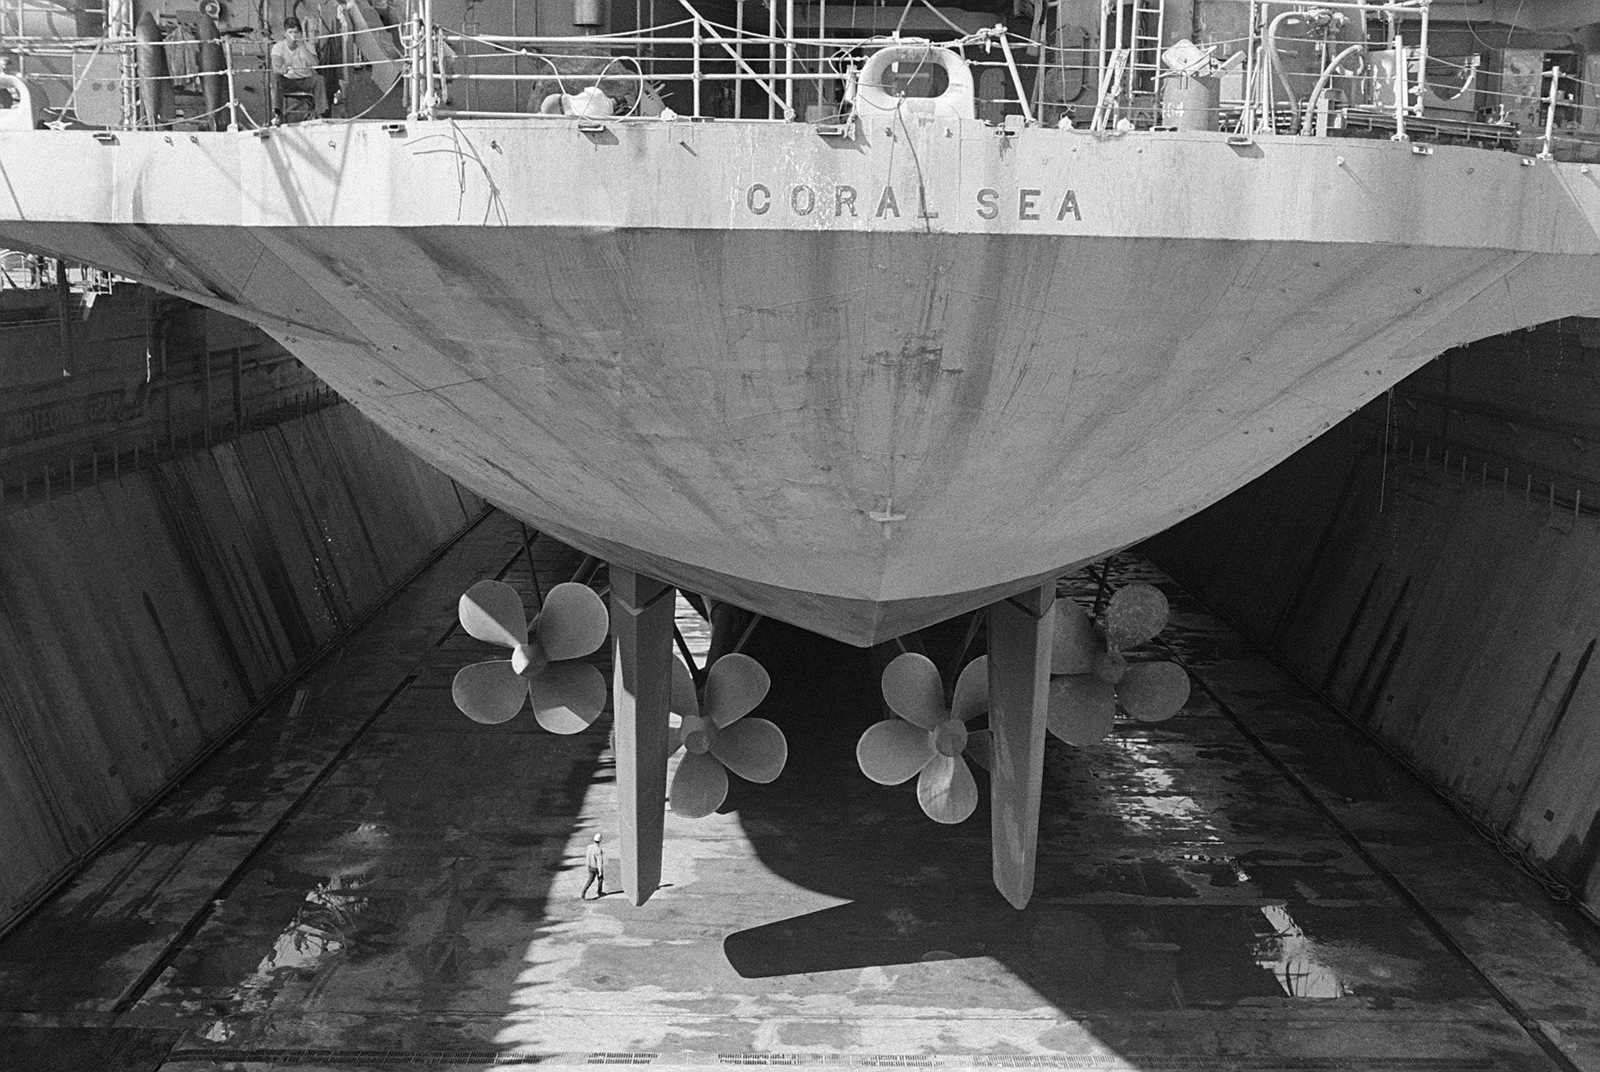 the-stern-of-the-aircraft-carrier-uss-coral-sea-cv-43-just-before-flooding-ab44e7-1600.jpg